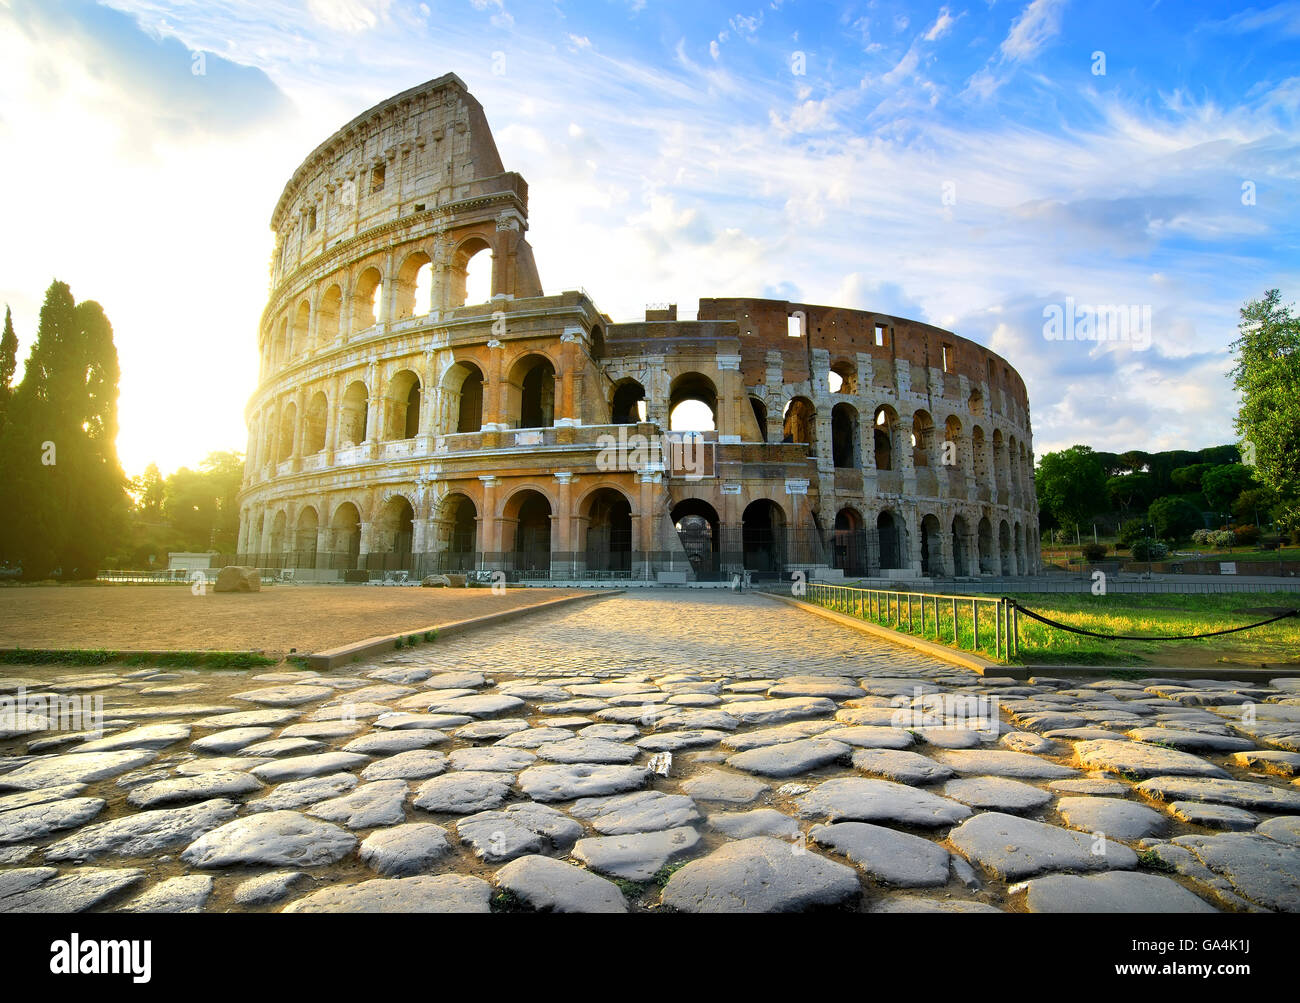 Road to Colosseum in calm sunny morning - Stock Image